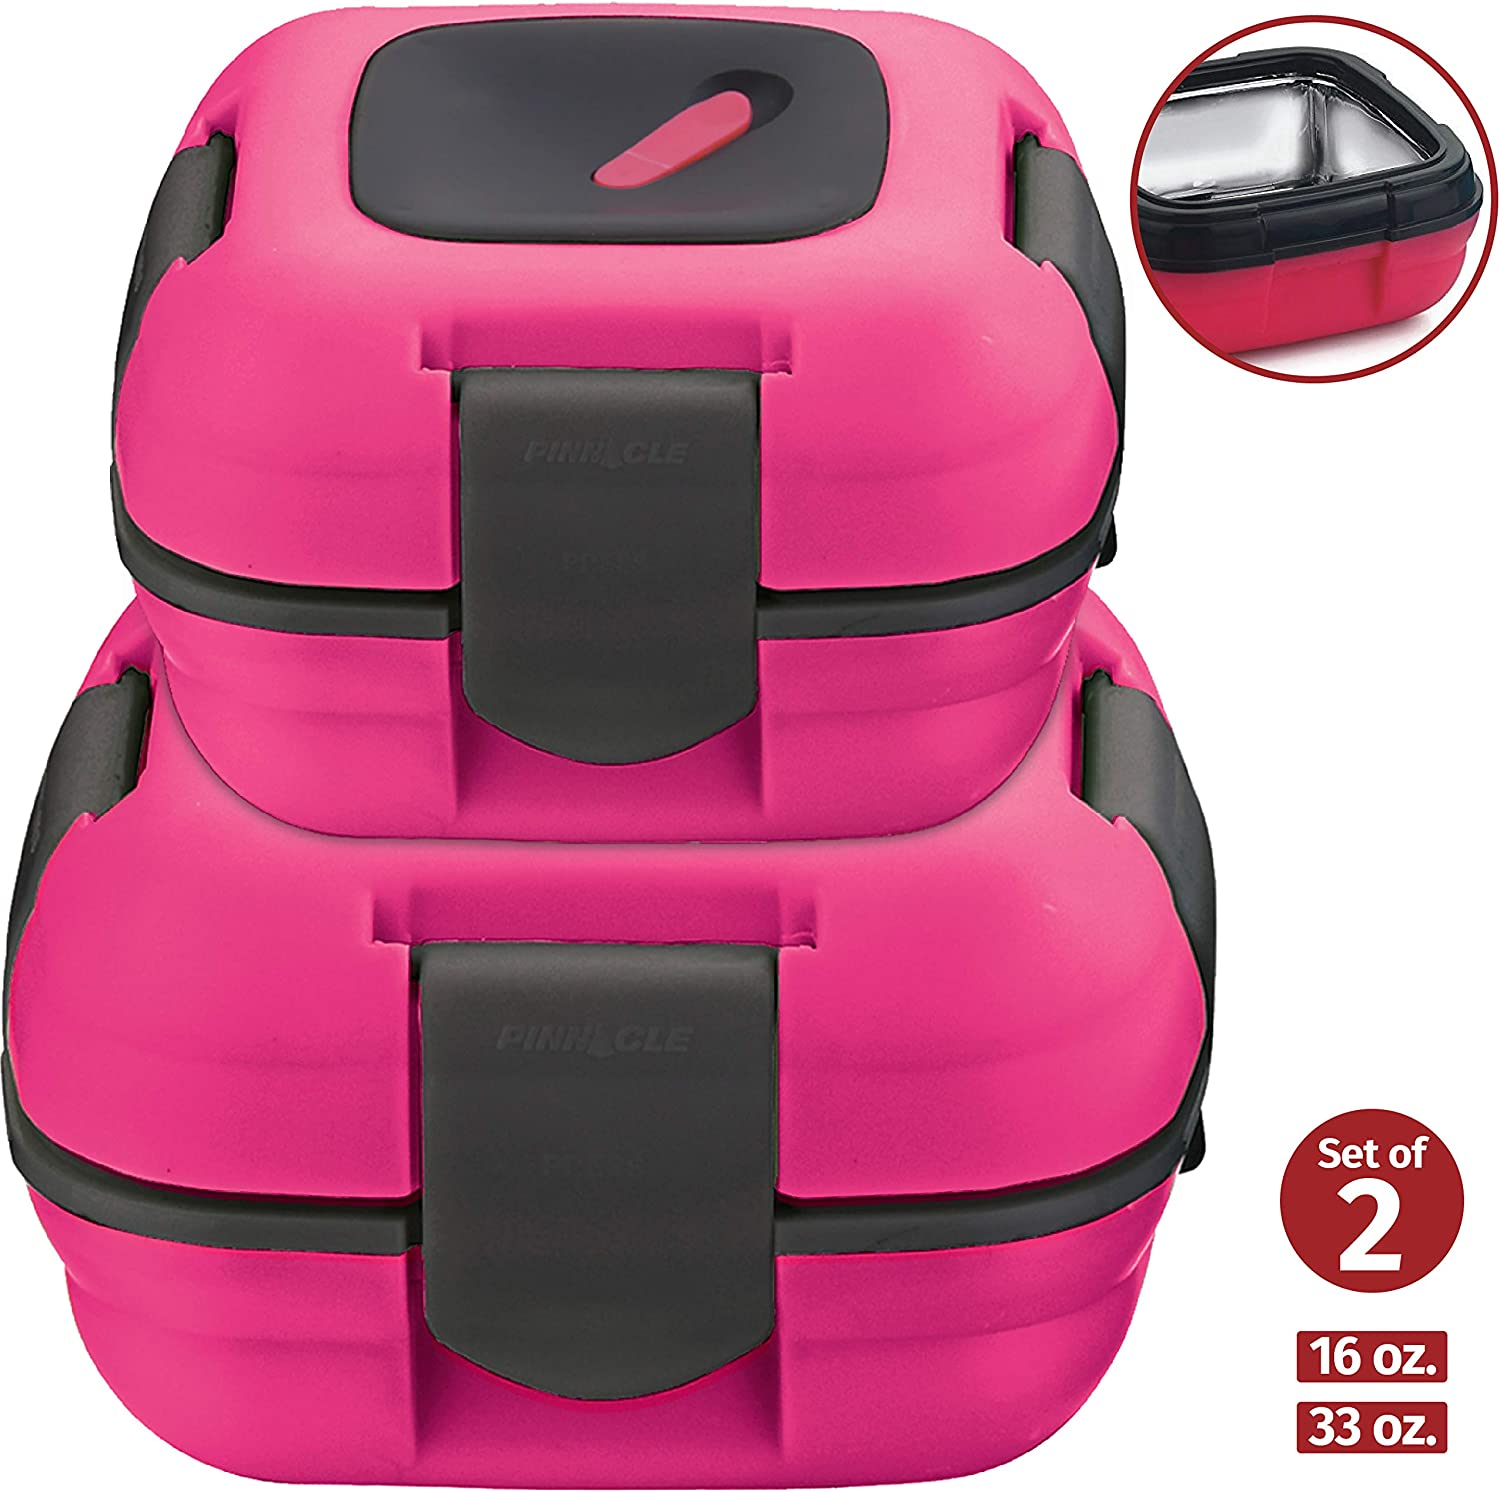 Lunch Box ~ Pinnacle Insulated Leak Proof Lunch Box for Adults and Kids - Thermal Lunch Container With NEW Heat Release Valve ~Set of 2/2 Sizes~ Pink